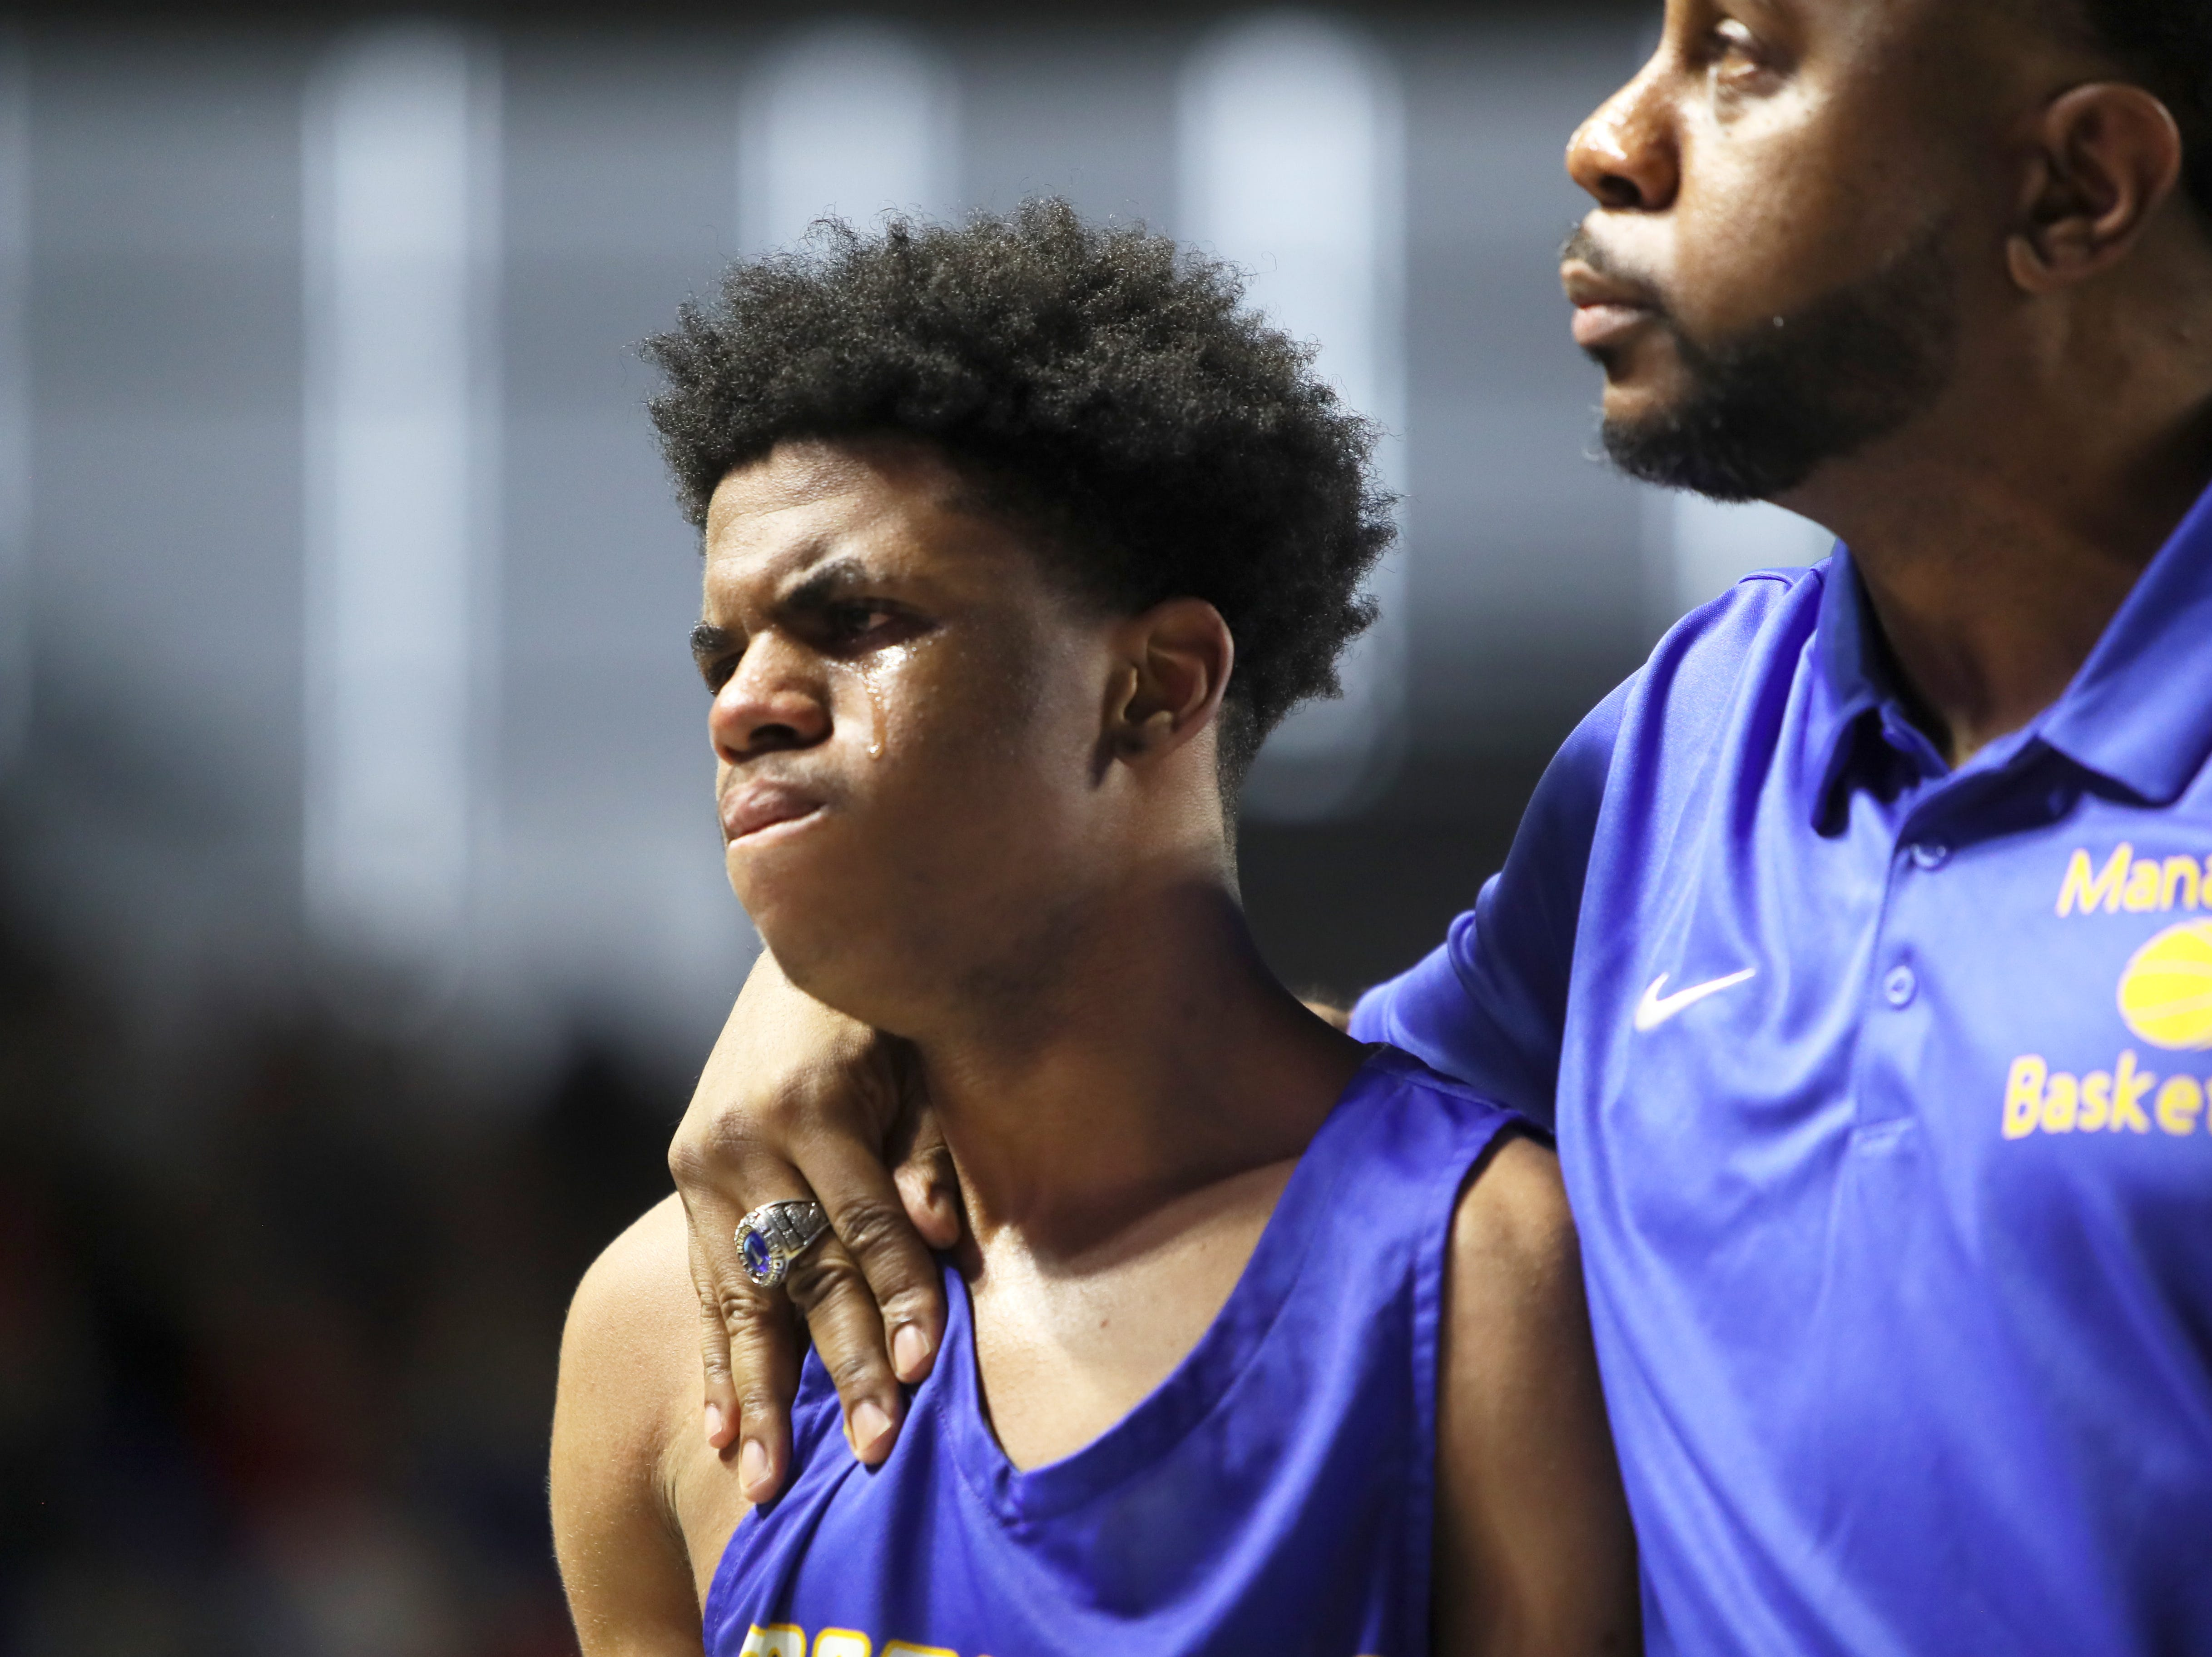 Manassas' Jalen Robinson shows his emotion after his team goes down 77-53 to Columbia Academy during the TSSAA Division I basketball state tournament at the Murphy Center in Murfreesboro on Thursday, March 14, 2019